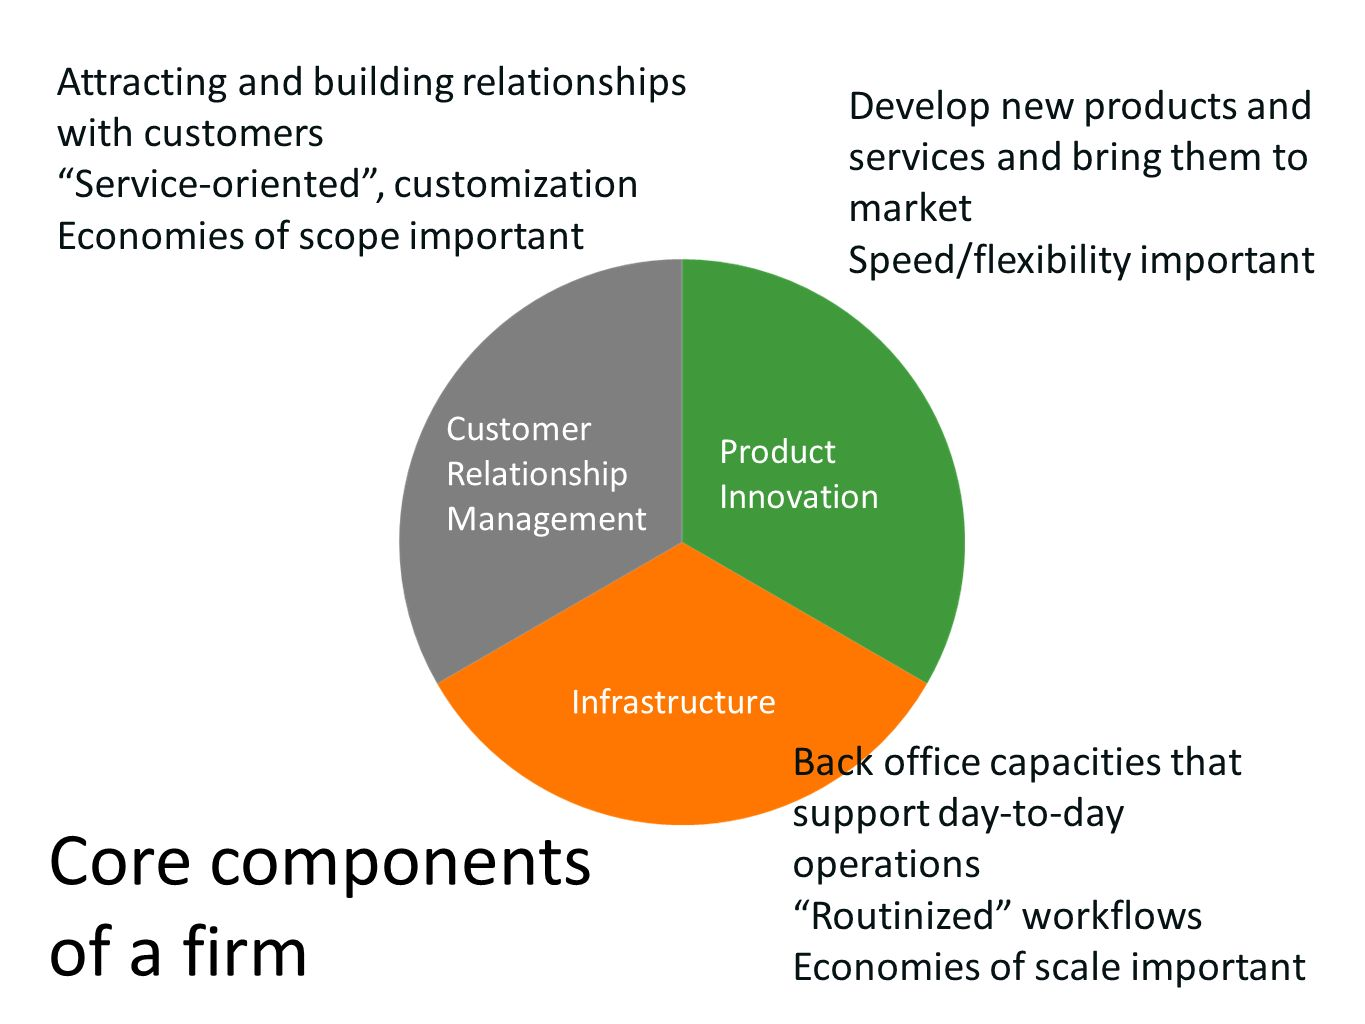 Core components of a firm Customer Relationship Management Product Innovation Infrastructure Back office capacities that support day-to-day operations Routinized workflows Economies of scale important Develop new products and services and bring them to market Speed/flexibility important Attracting and building relationships with customers Service-oriented, customization Economies of scope important